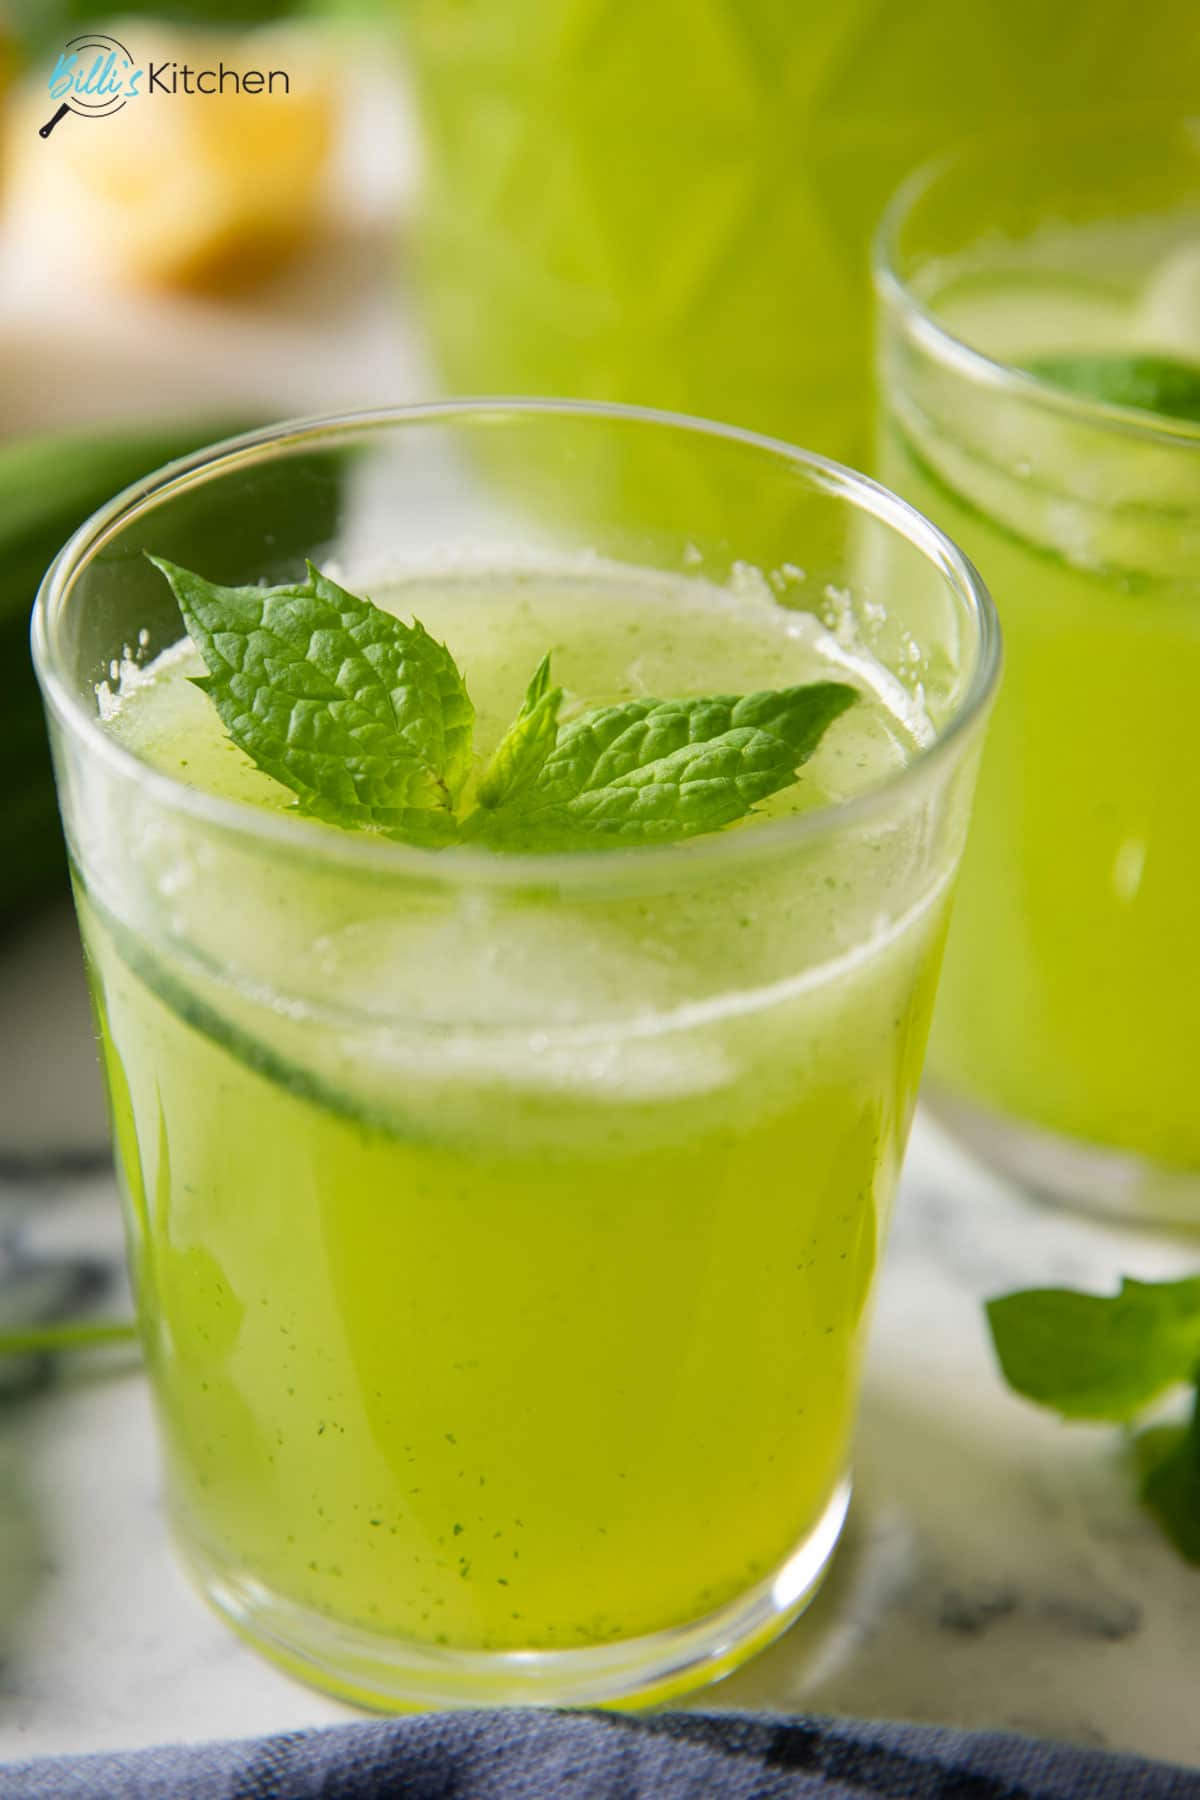 A closer shot of a glass of Cucumber Lemonade, highlighting the brightness of it, garnished with mint leaves.